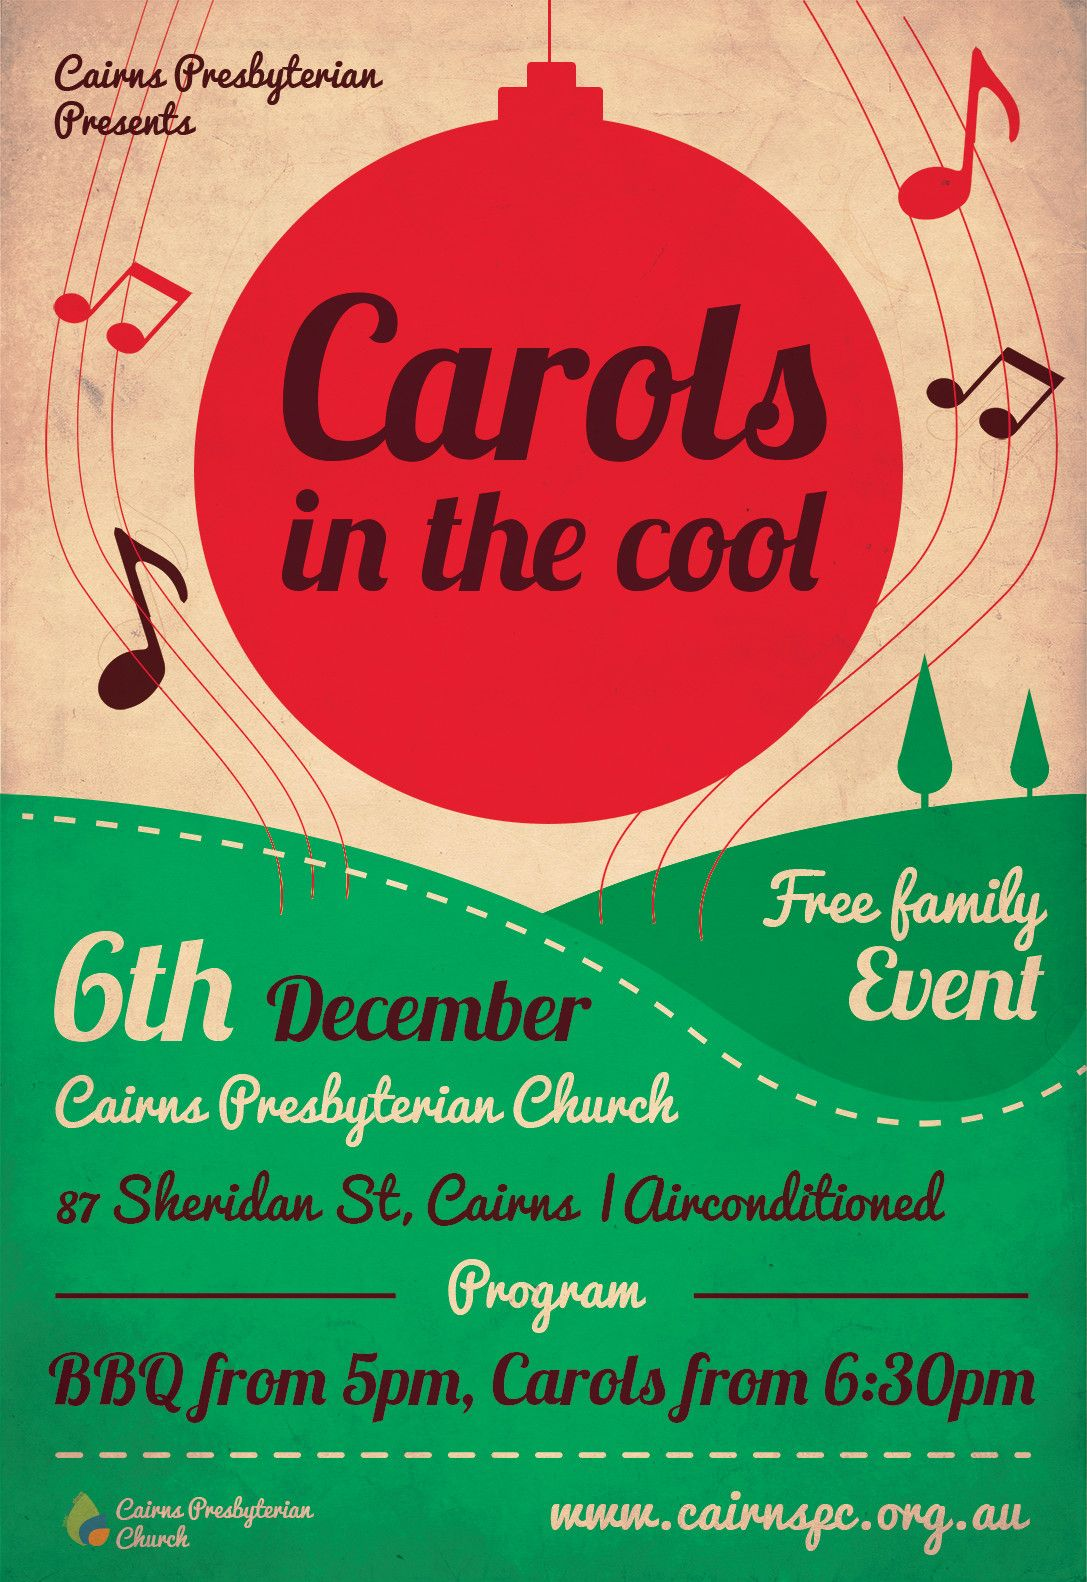 Carols Service Ad (used a template) | Templates ...